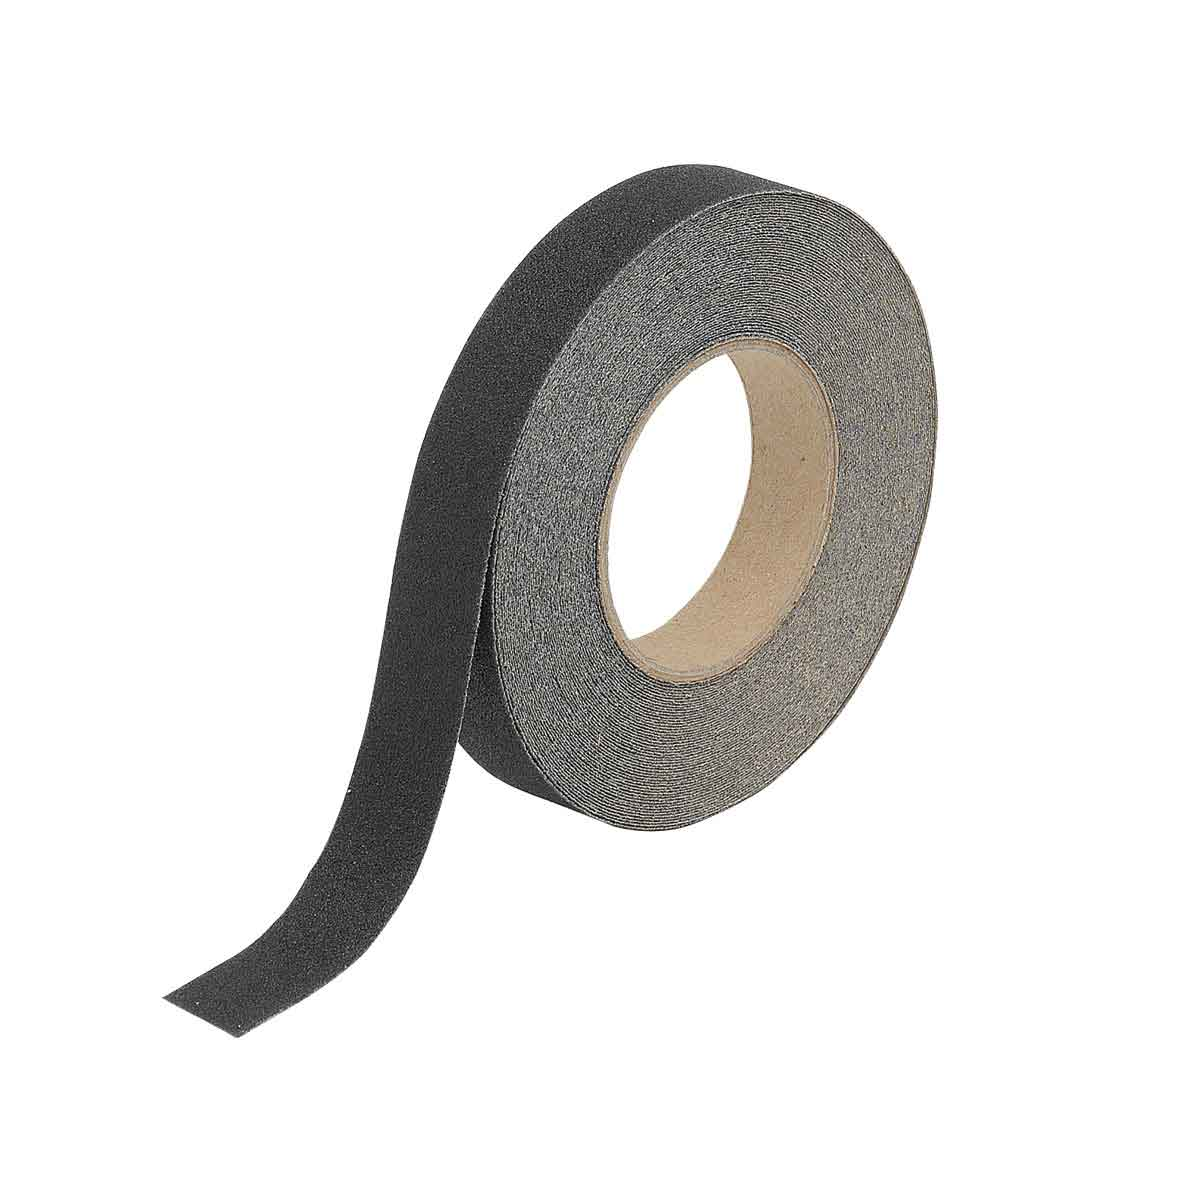 Brady® 78147 Laminated Non-Reflective Anti-Skid Tape Roll, 60 ft L x 2 in W x 0.026 in THK, B-916 Polyester/Oxide Grit, Stripes Surface Pattern